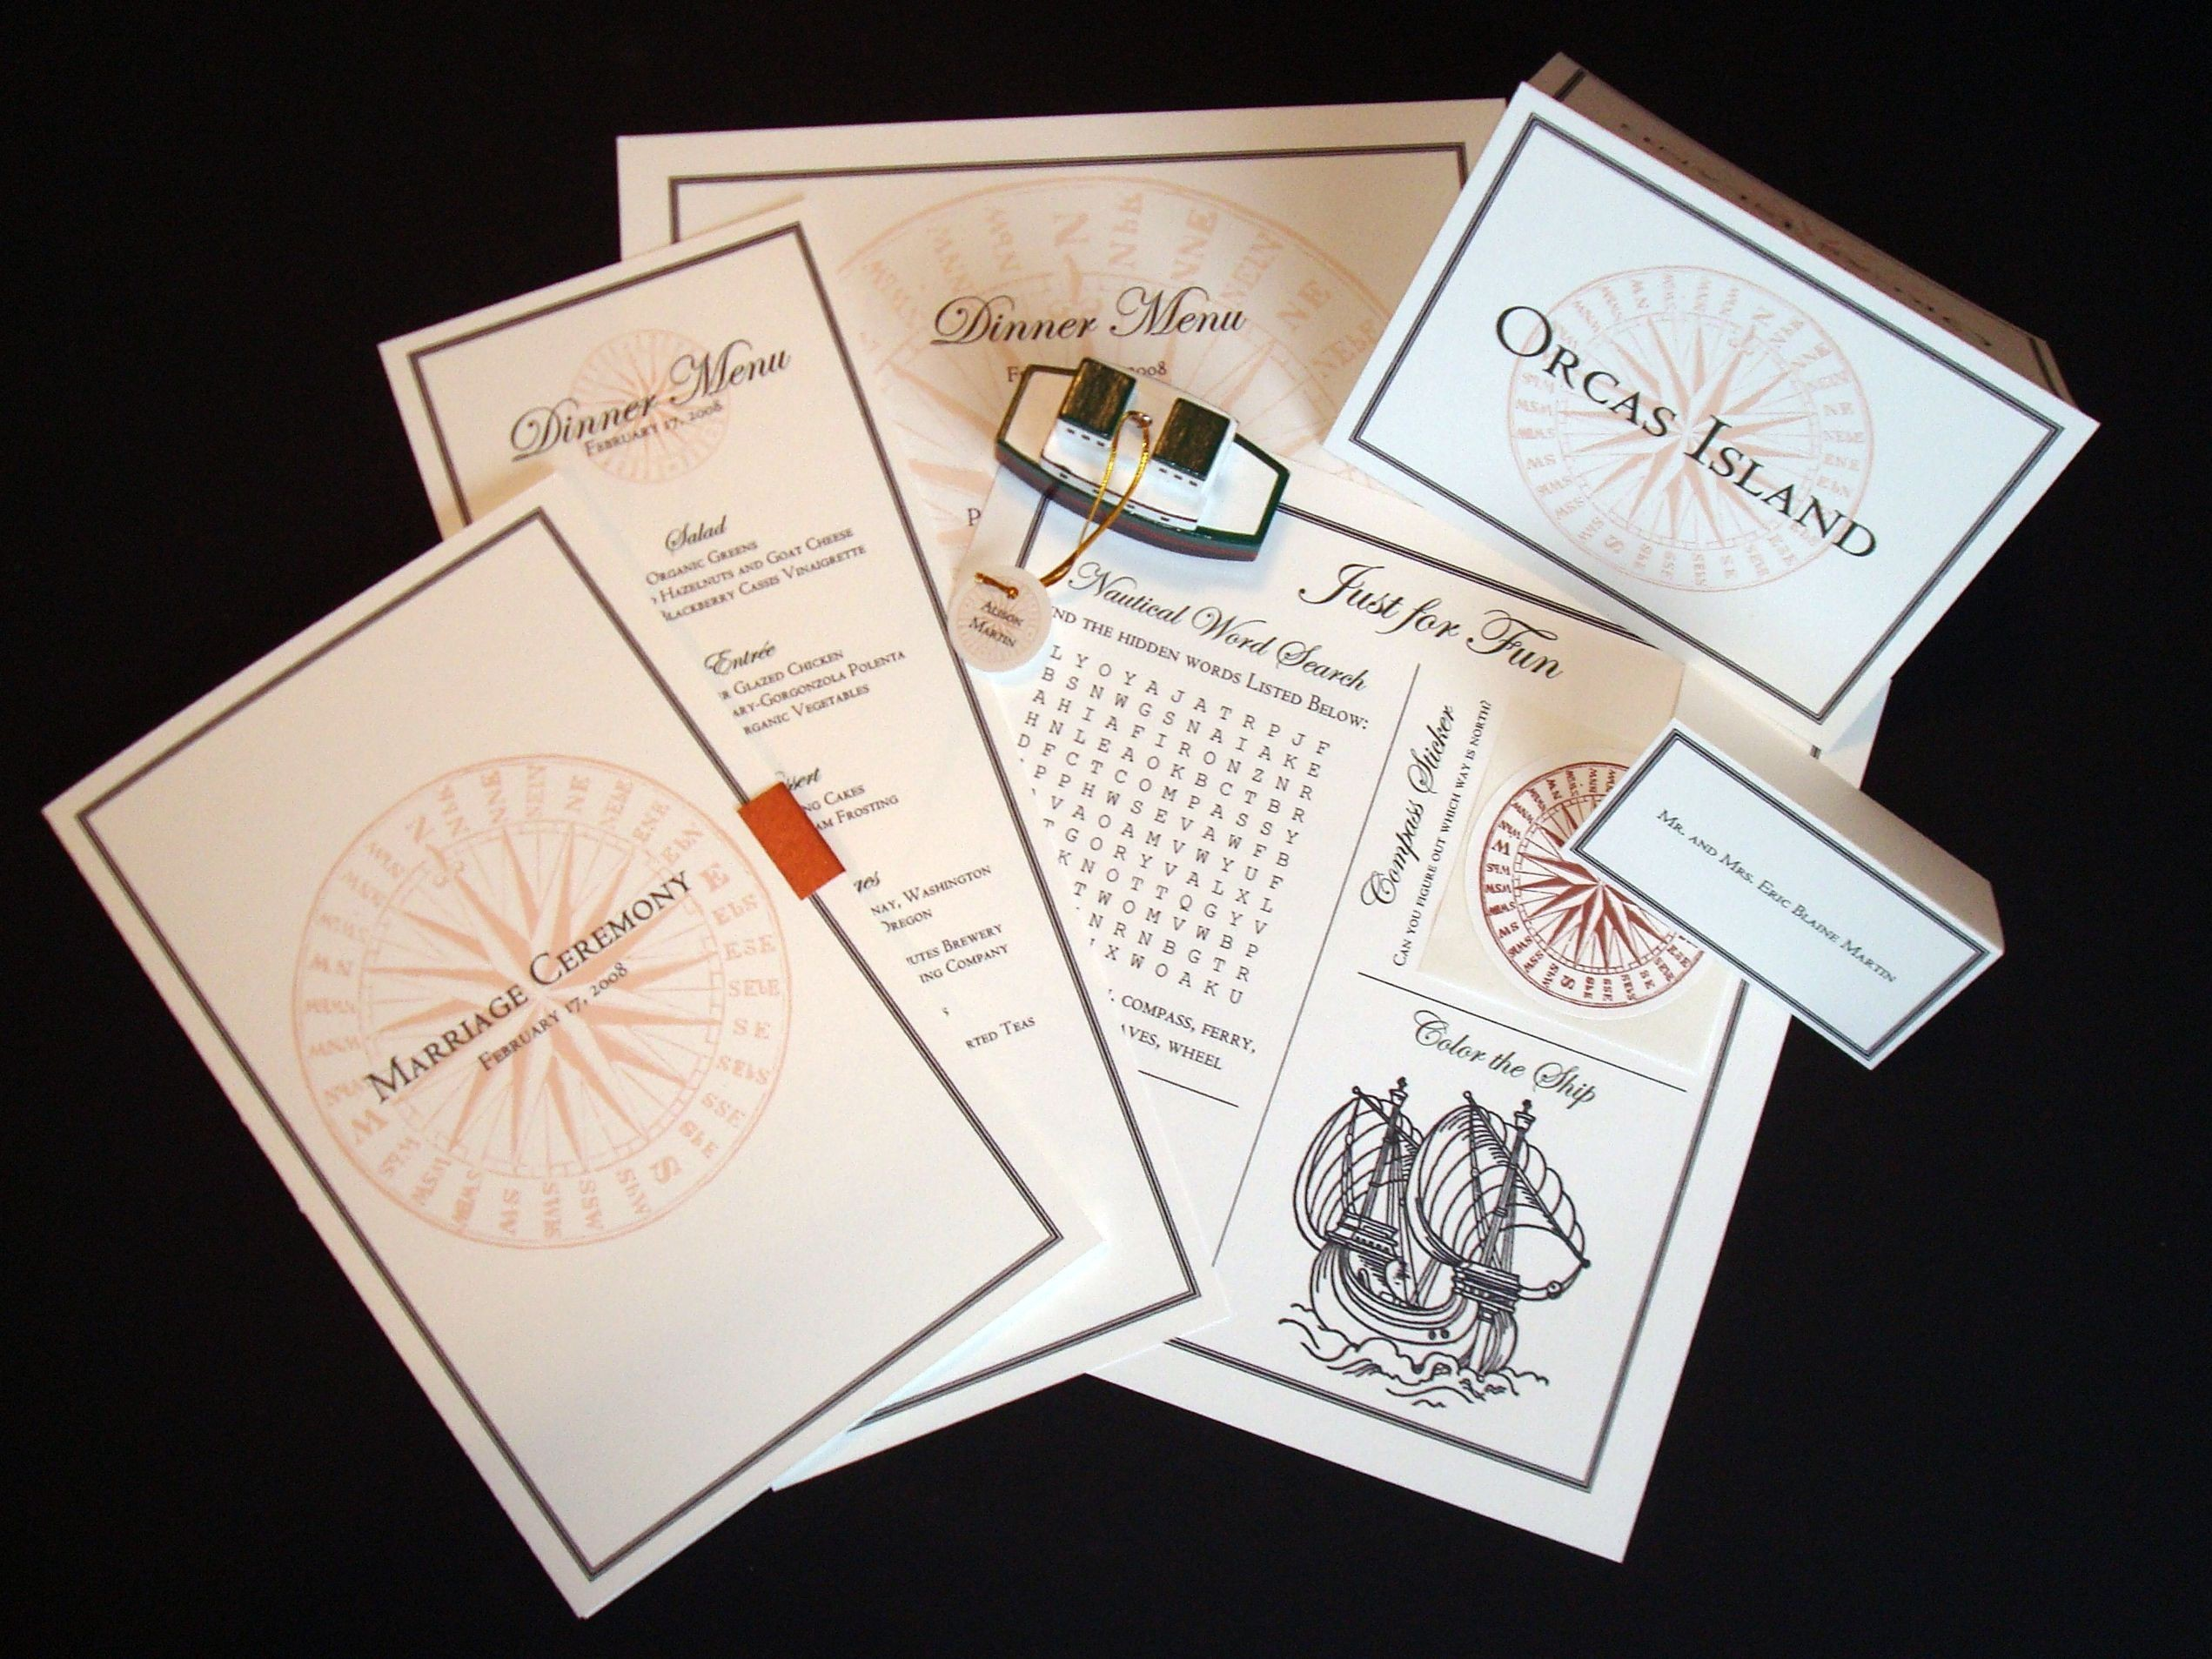 Ceremony, Reception, Flowers & Decor, Favors & Gifts, Stationery, ivory, green, favor, Ceremony Programs, Menu, Programs, Menus, Cards, Escort, Wedding, Custom, Nautical, Weddings, Place, Tags, Copper, Placemat, Childrens, Brass paperclip, Paperclip, Brass, Compass